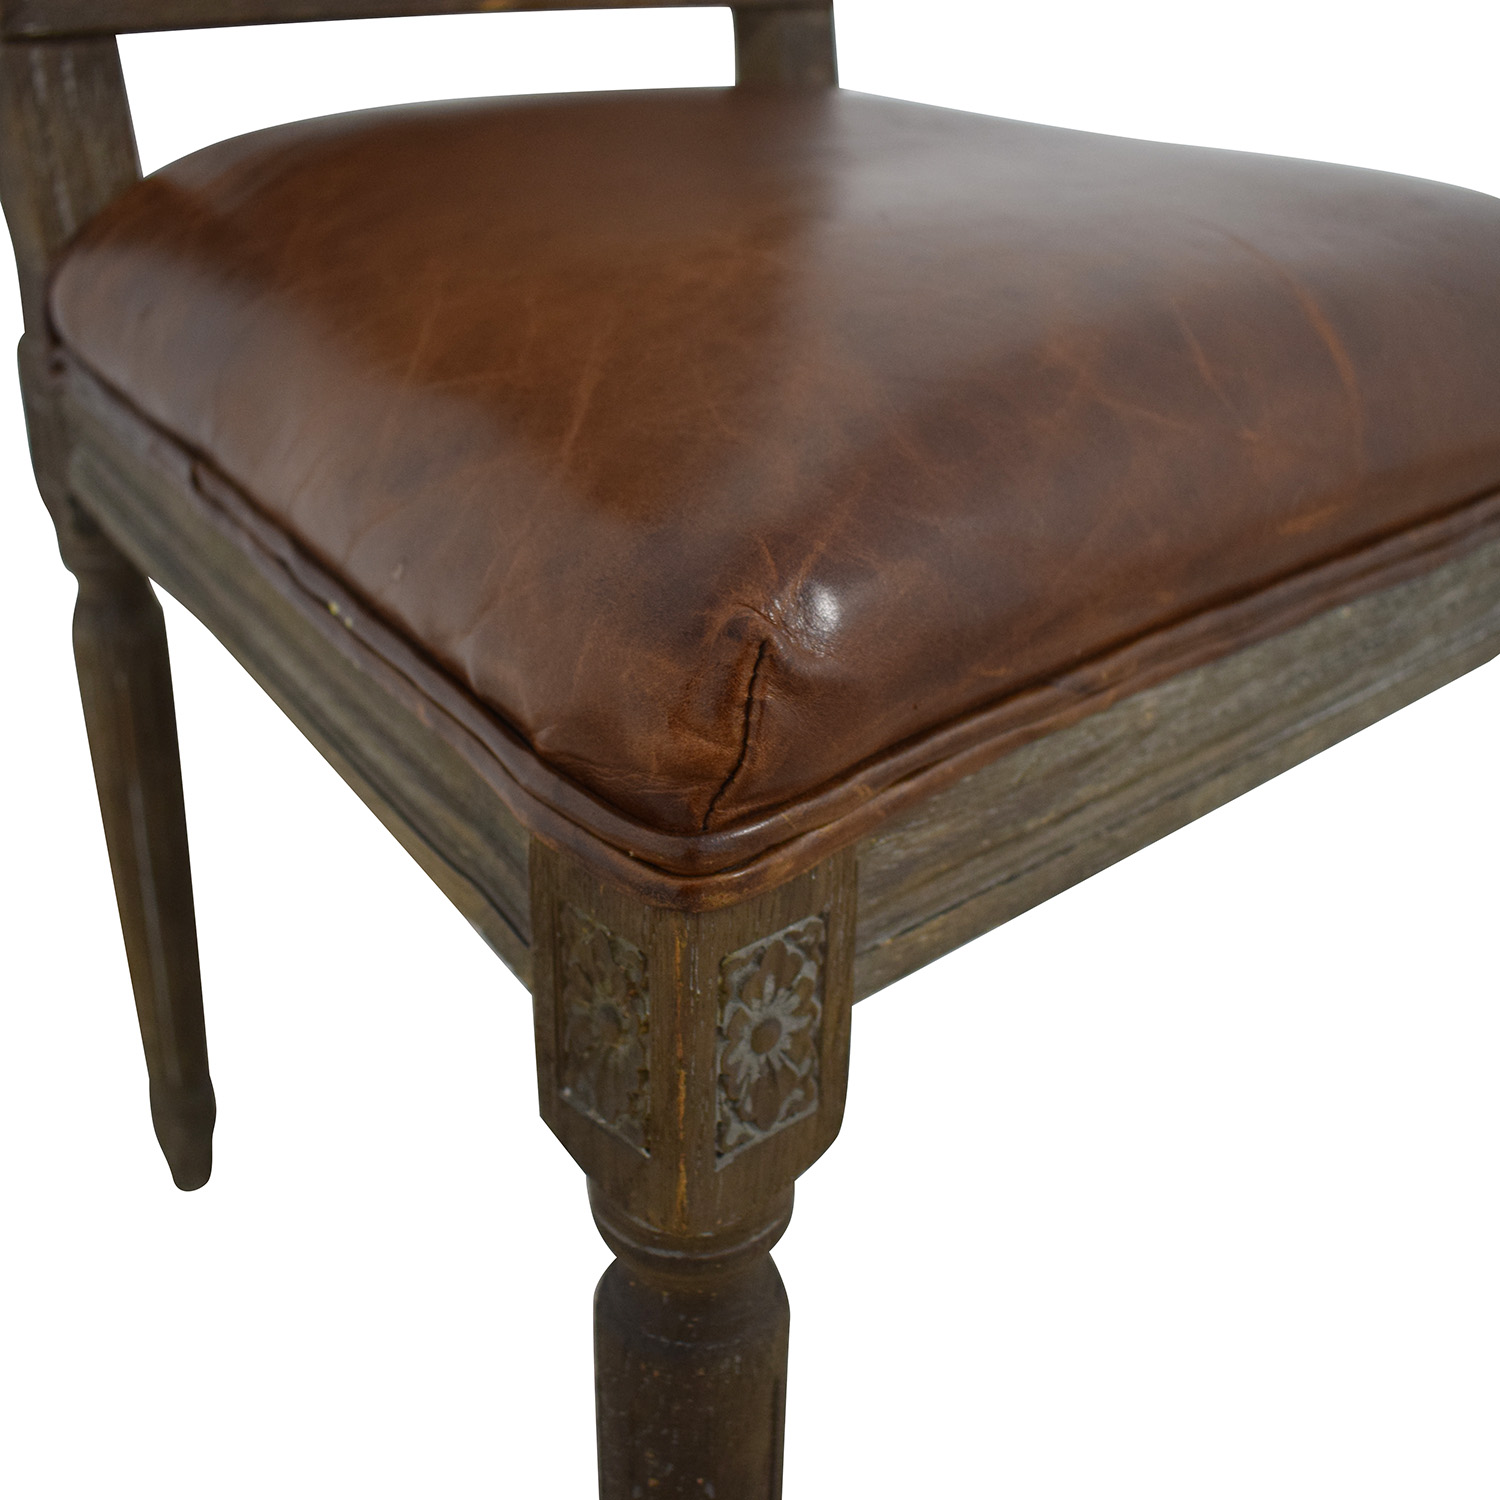 Restoration Hardware Restoration Hardware Vintage French Square Cane Back Leather Side Chair Dining Chairs